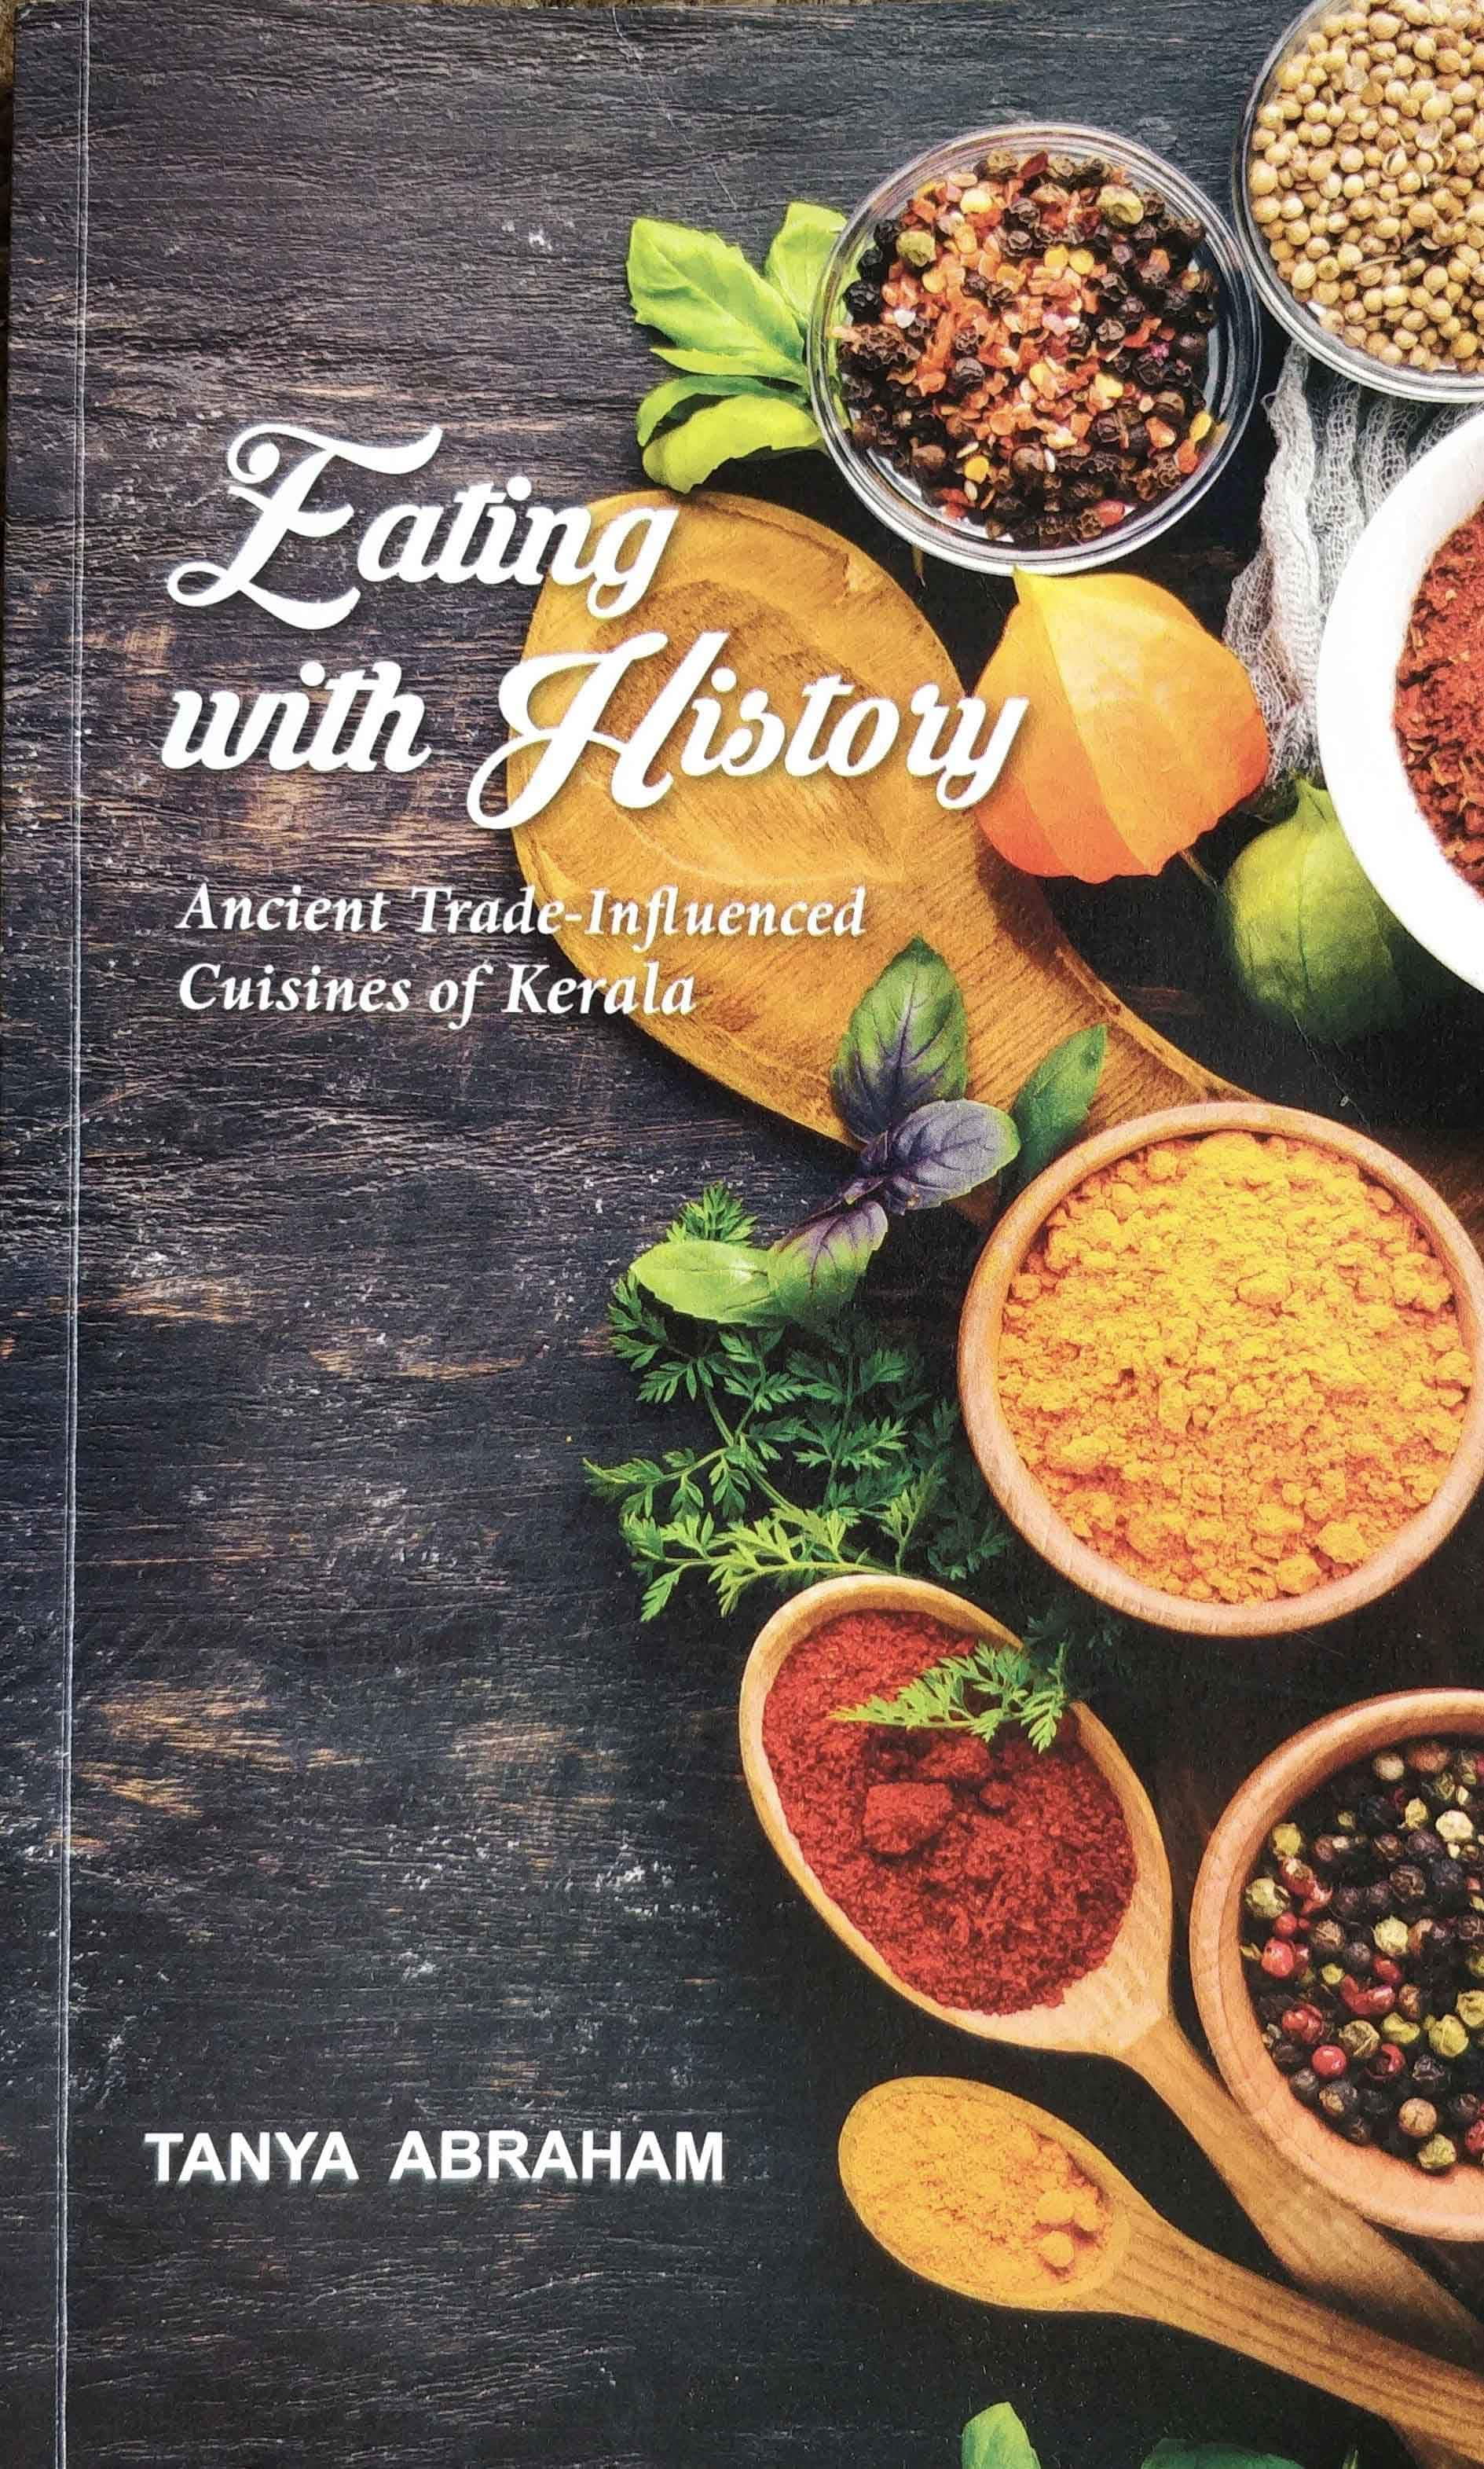 Eating with History by Tanya Abraham